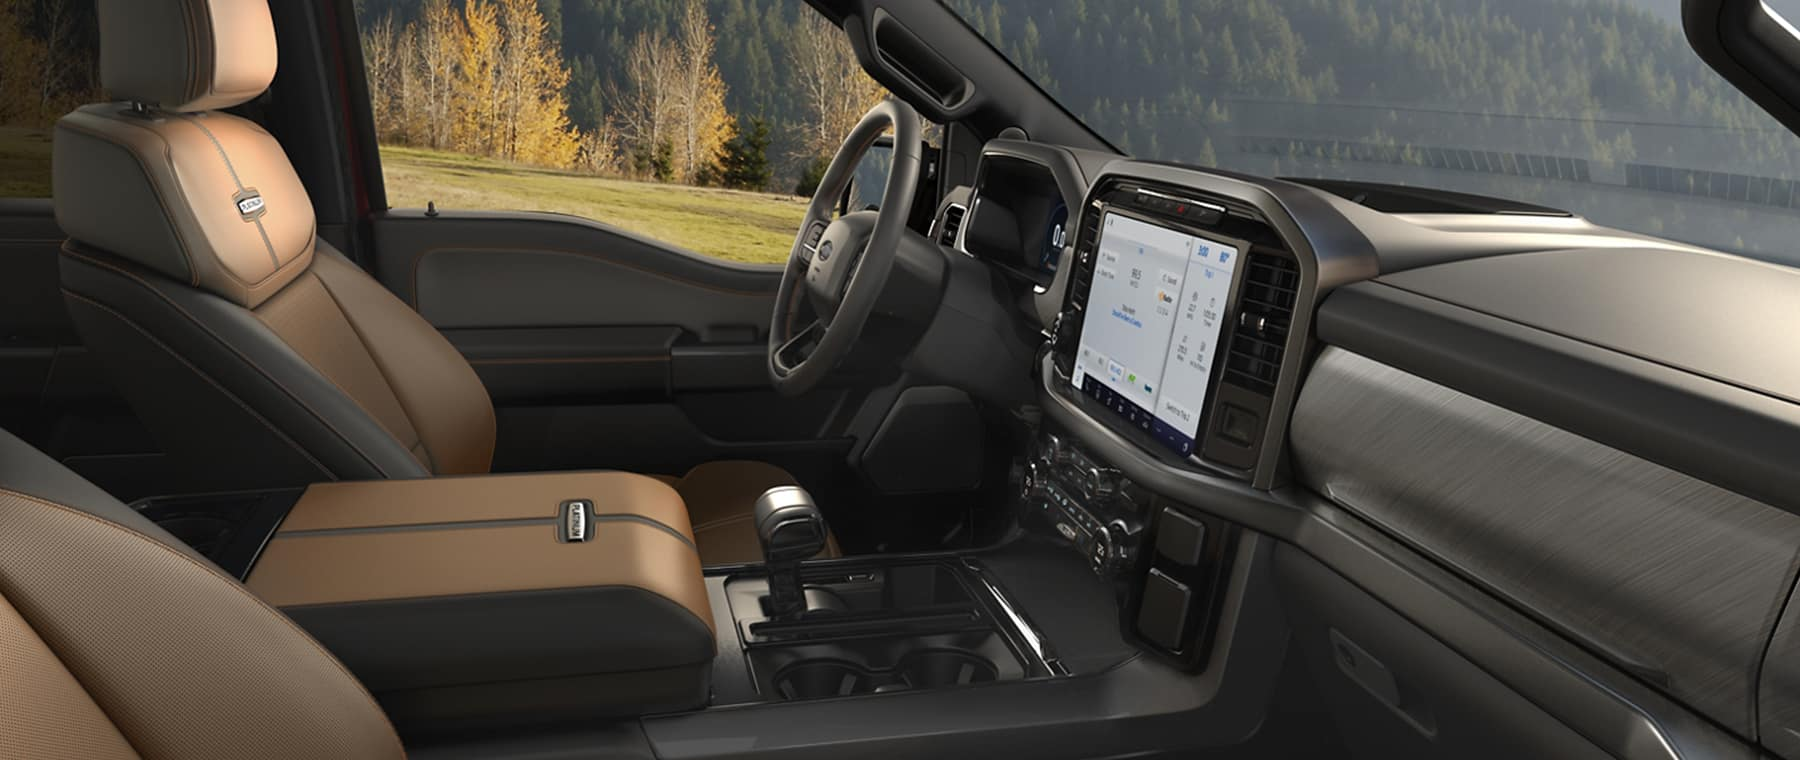 2021 Ford F150 front seat